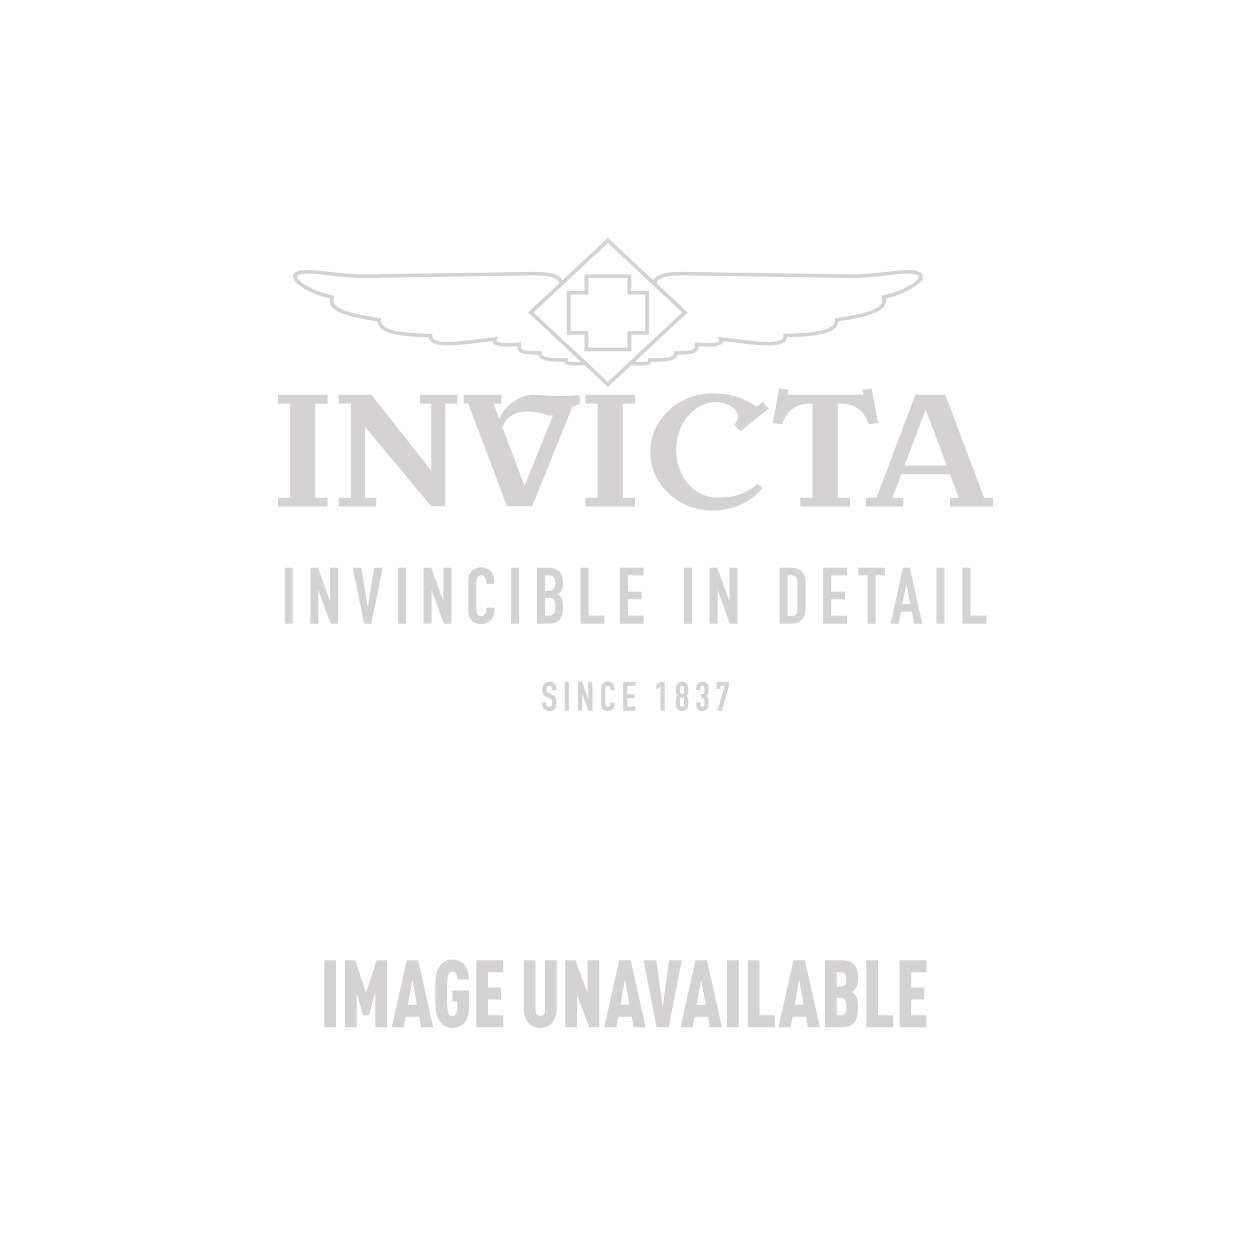 Invicta Sea Base Automatic Watch - Stainless Steel case Stainless Steel band - Model 17920